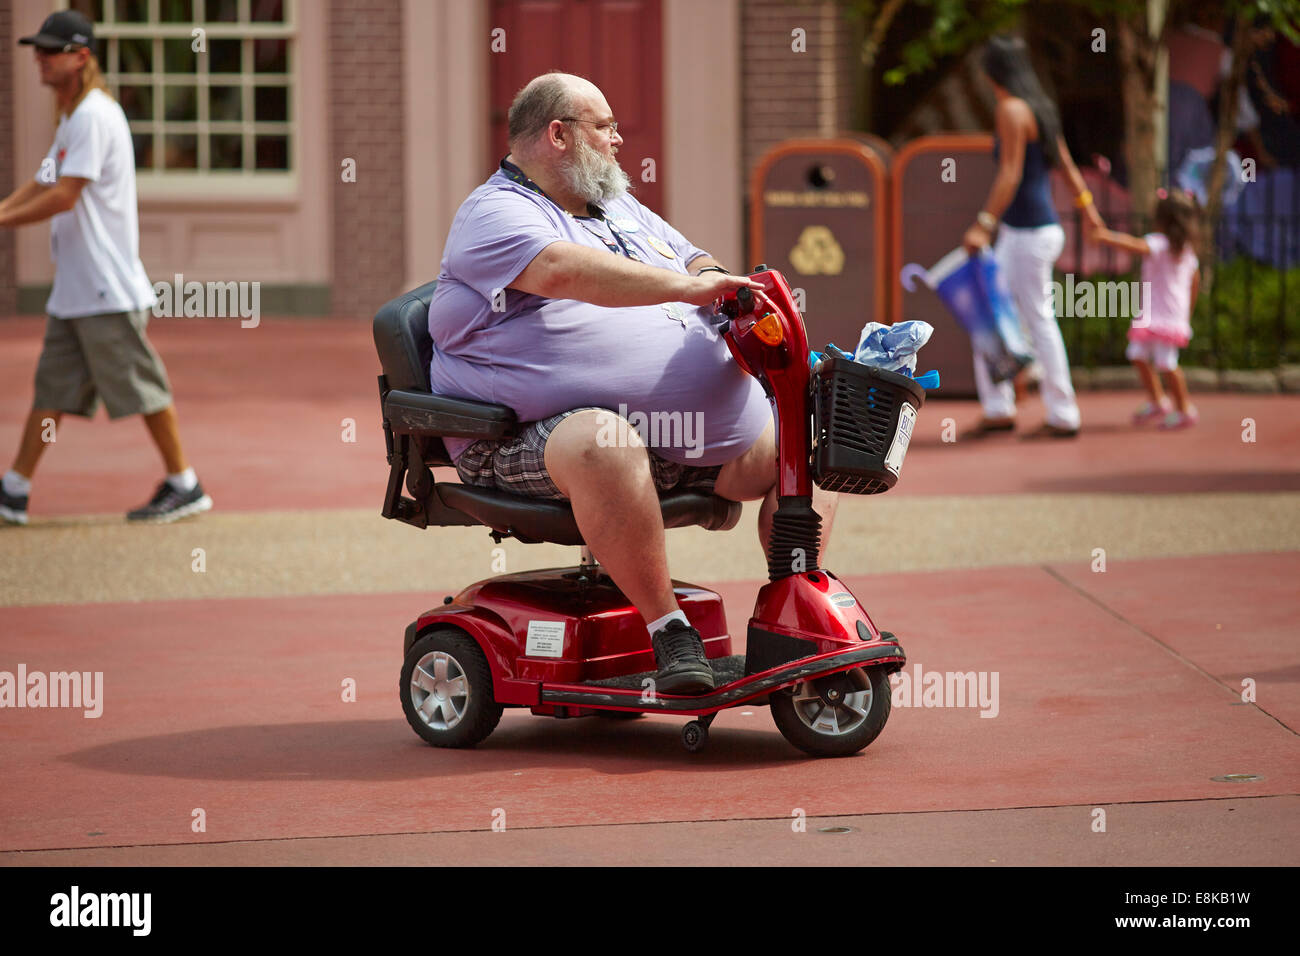 wheelchair hire york folding canvas chairs florida usa disneyland fat person on a mobility scooter